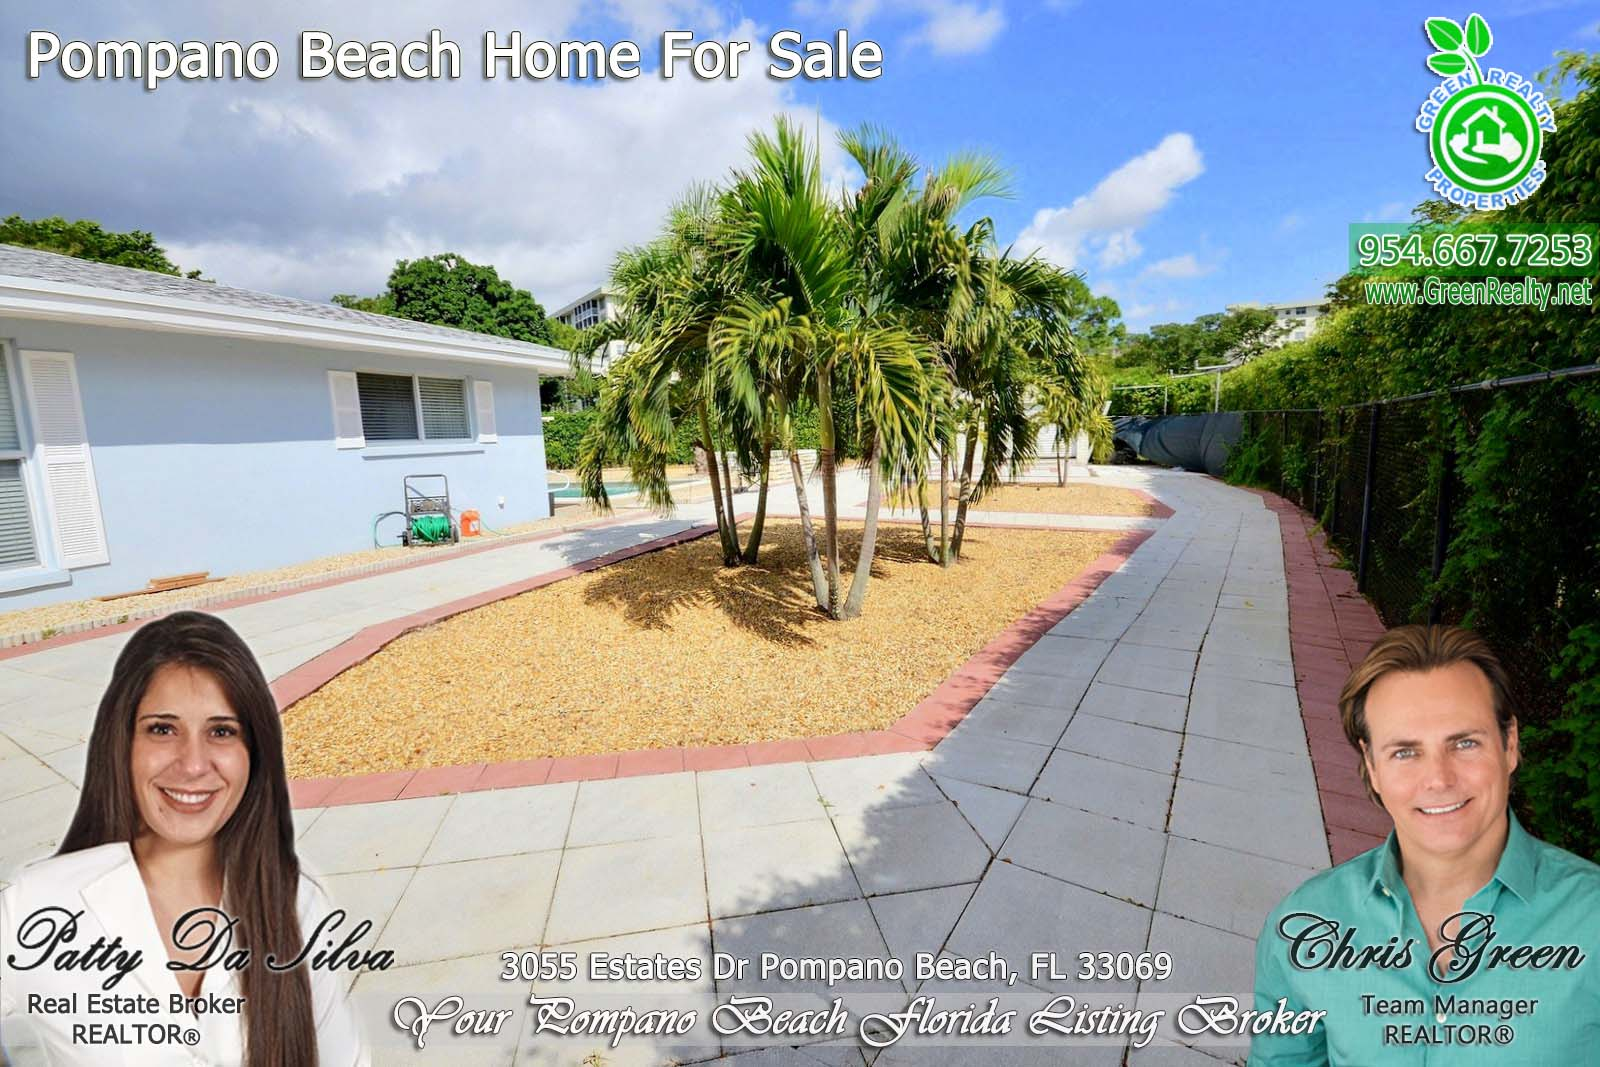 36 Pompano Beach Homes For Sale (3)